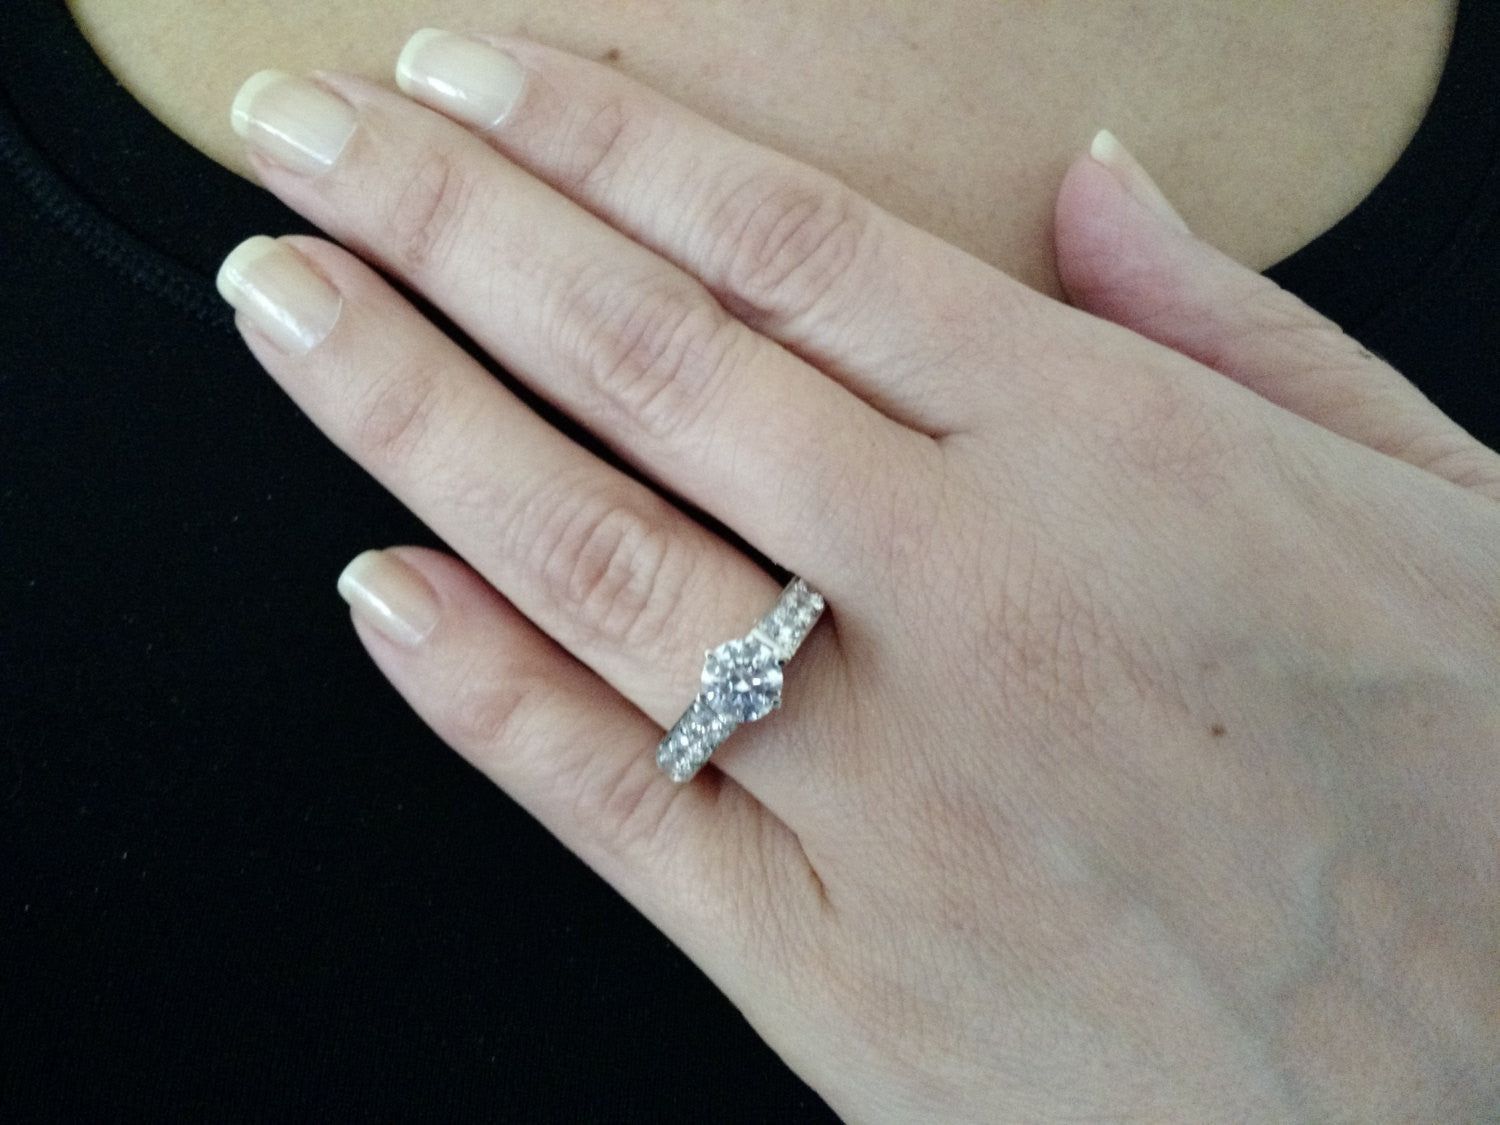 Semi Mount Engagement Ring, Unique Solitaire For 1 Carat Center Stone Has 2.62 Carat Diamonds, Anniversary Ring - Y11637